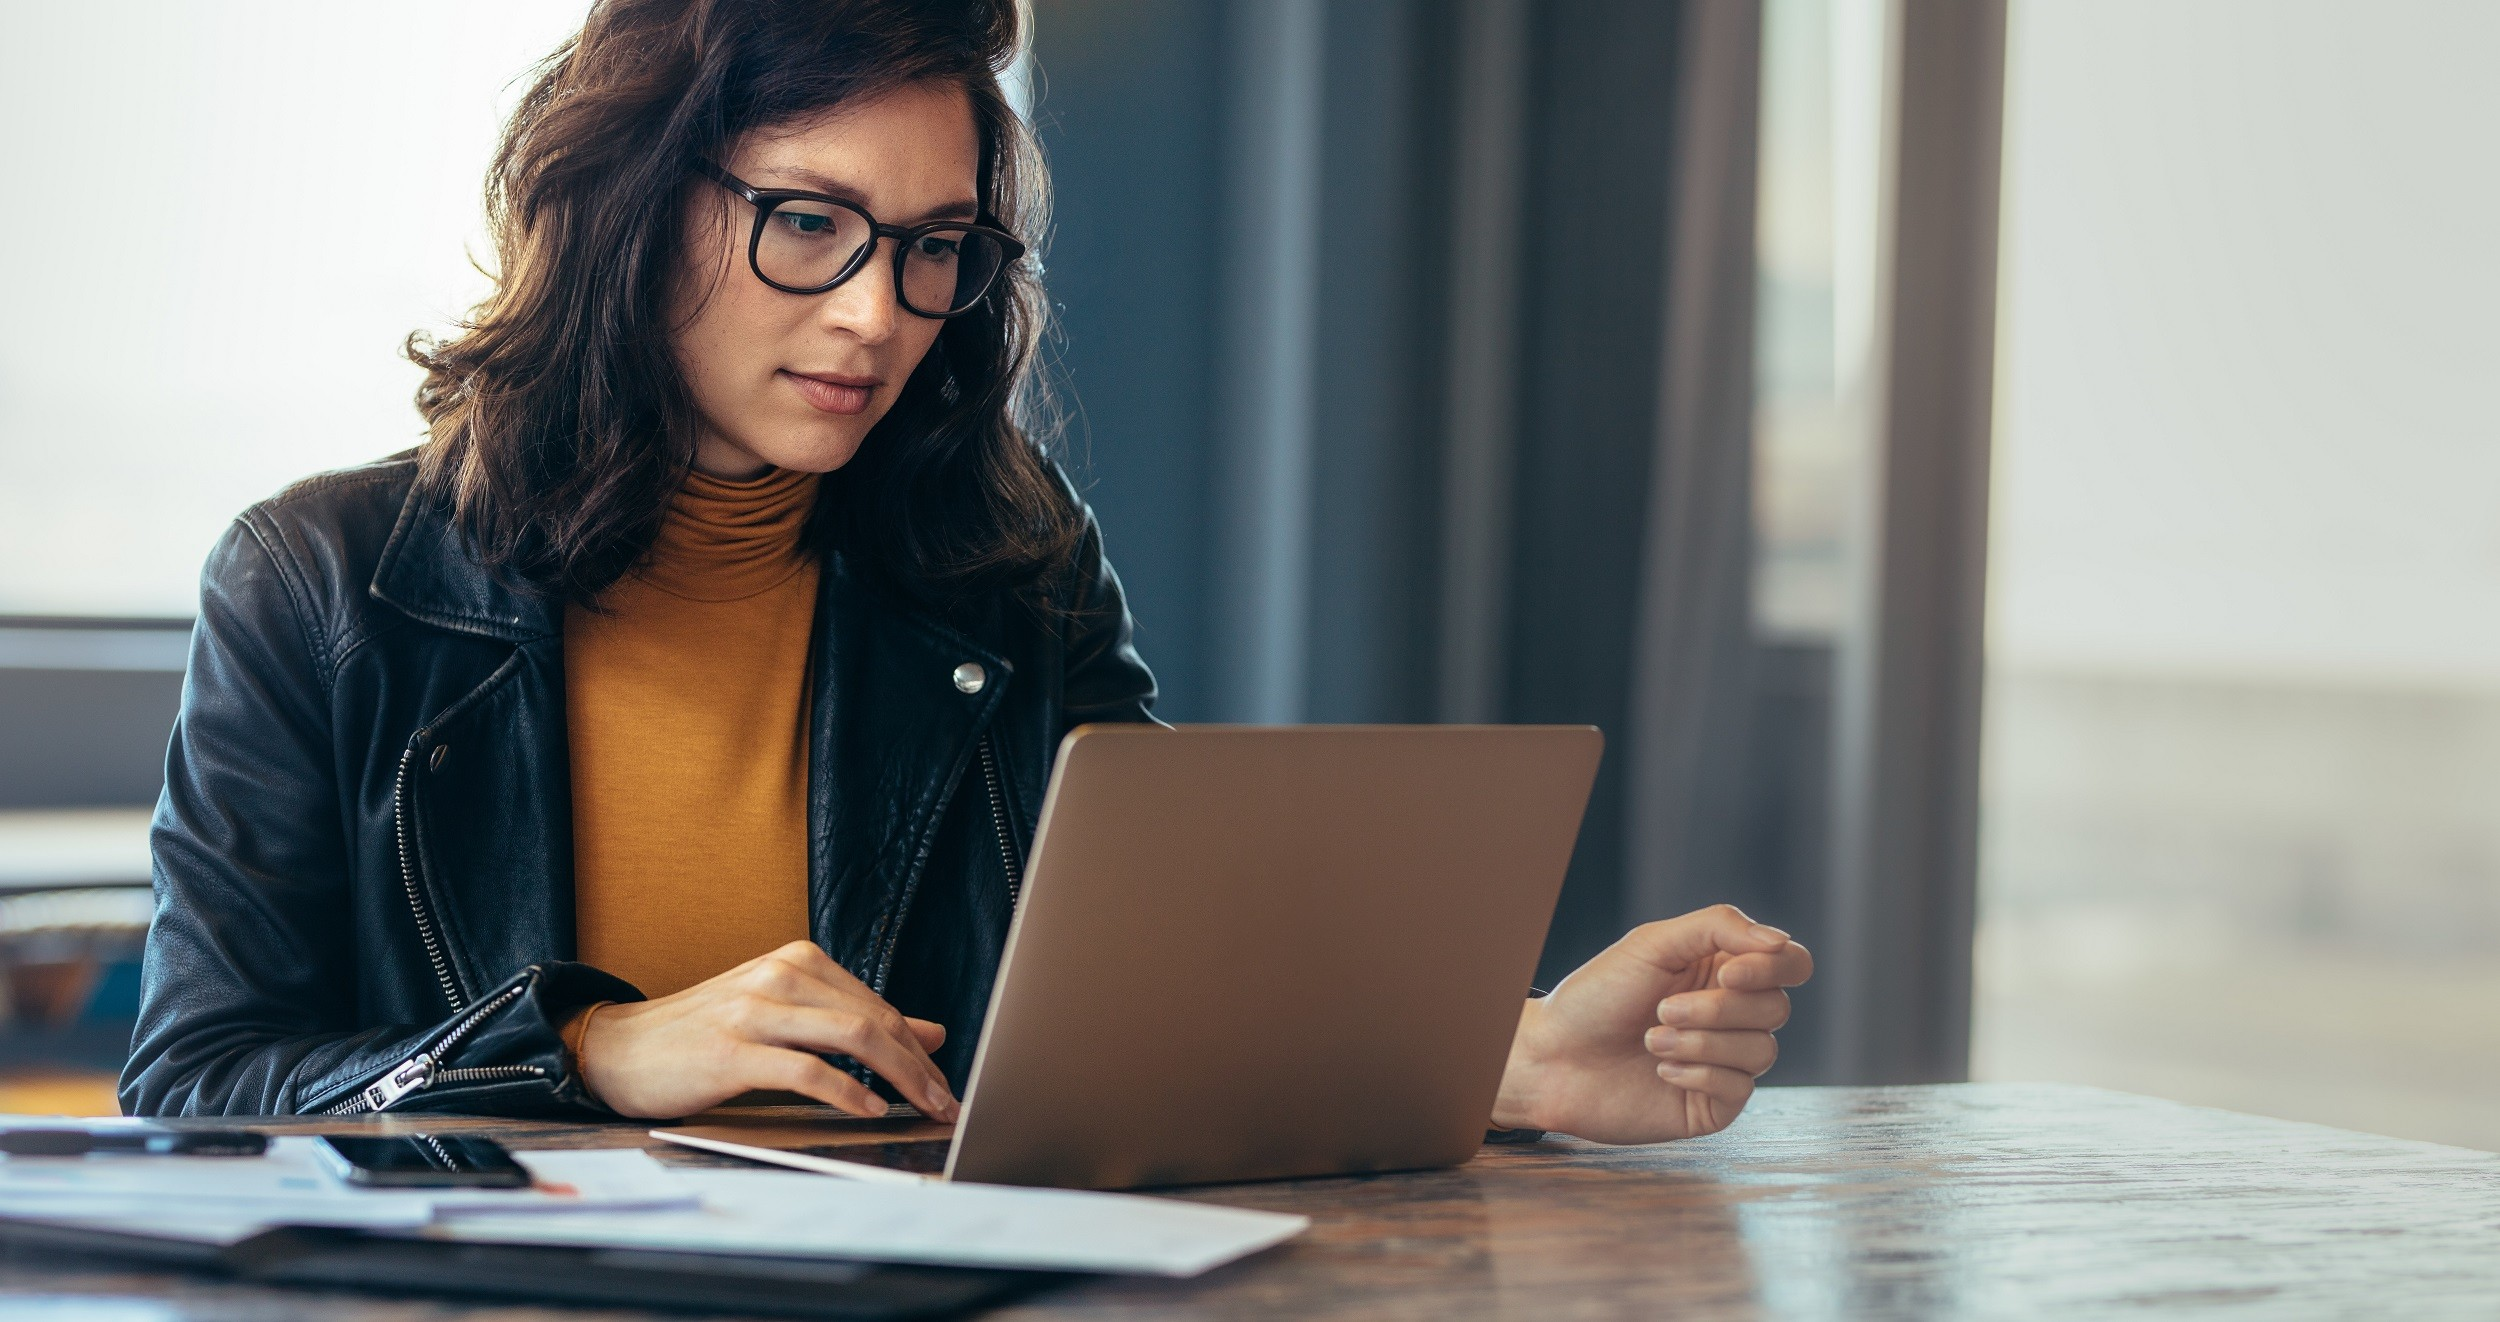 Woman working on recycled laptop